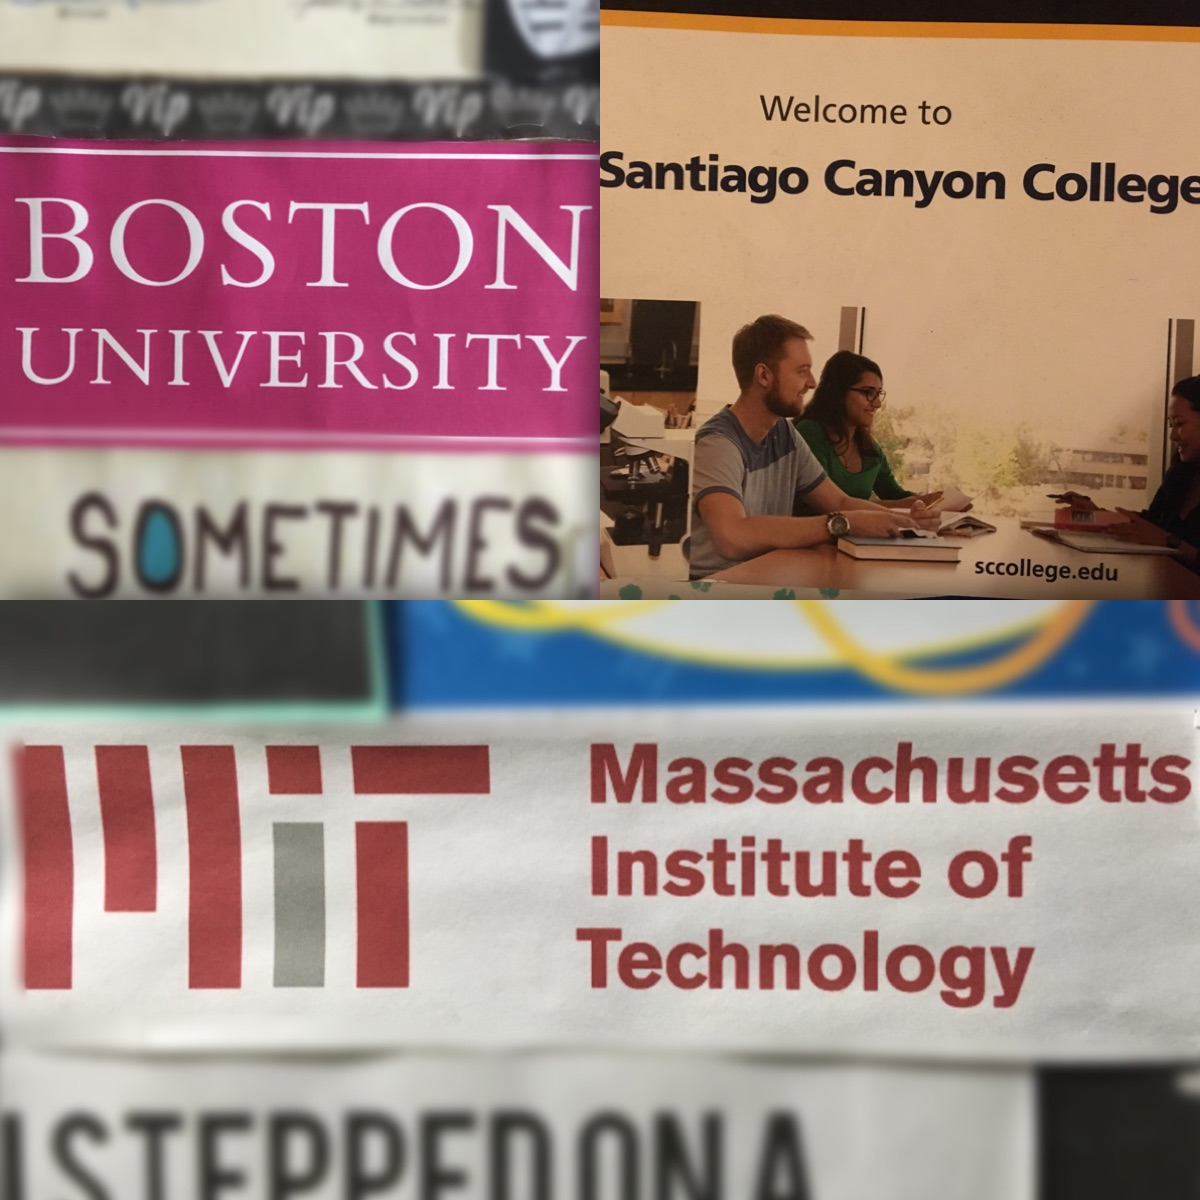 There are several different colleges all around the United States, but which is the best for who?